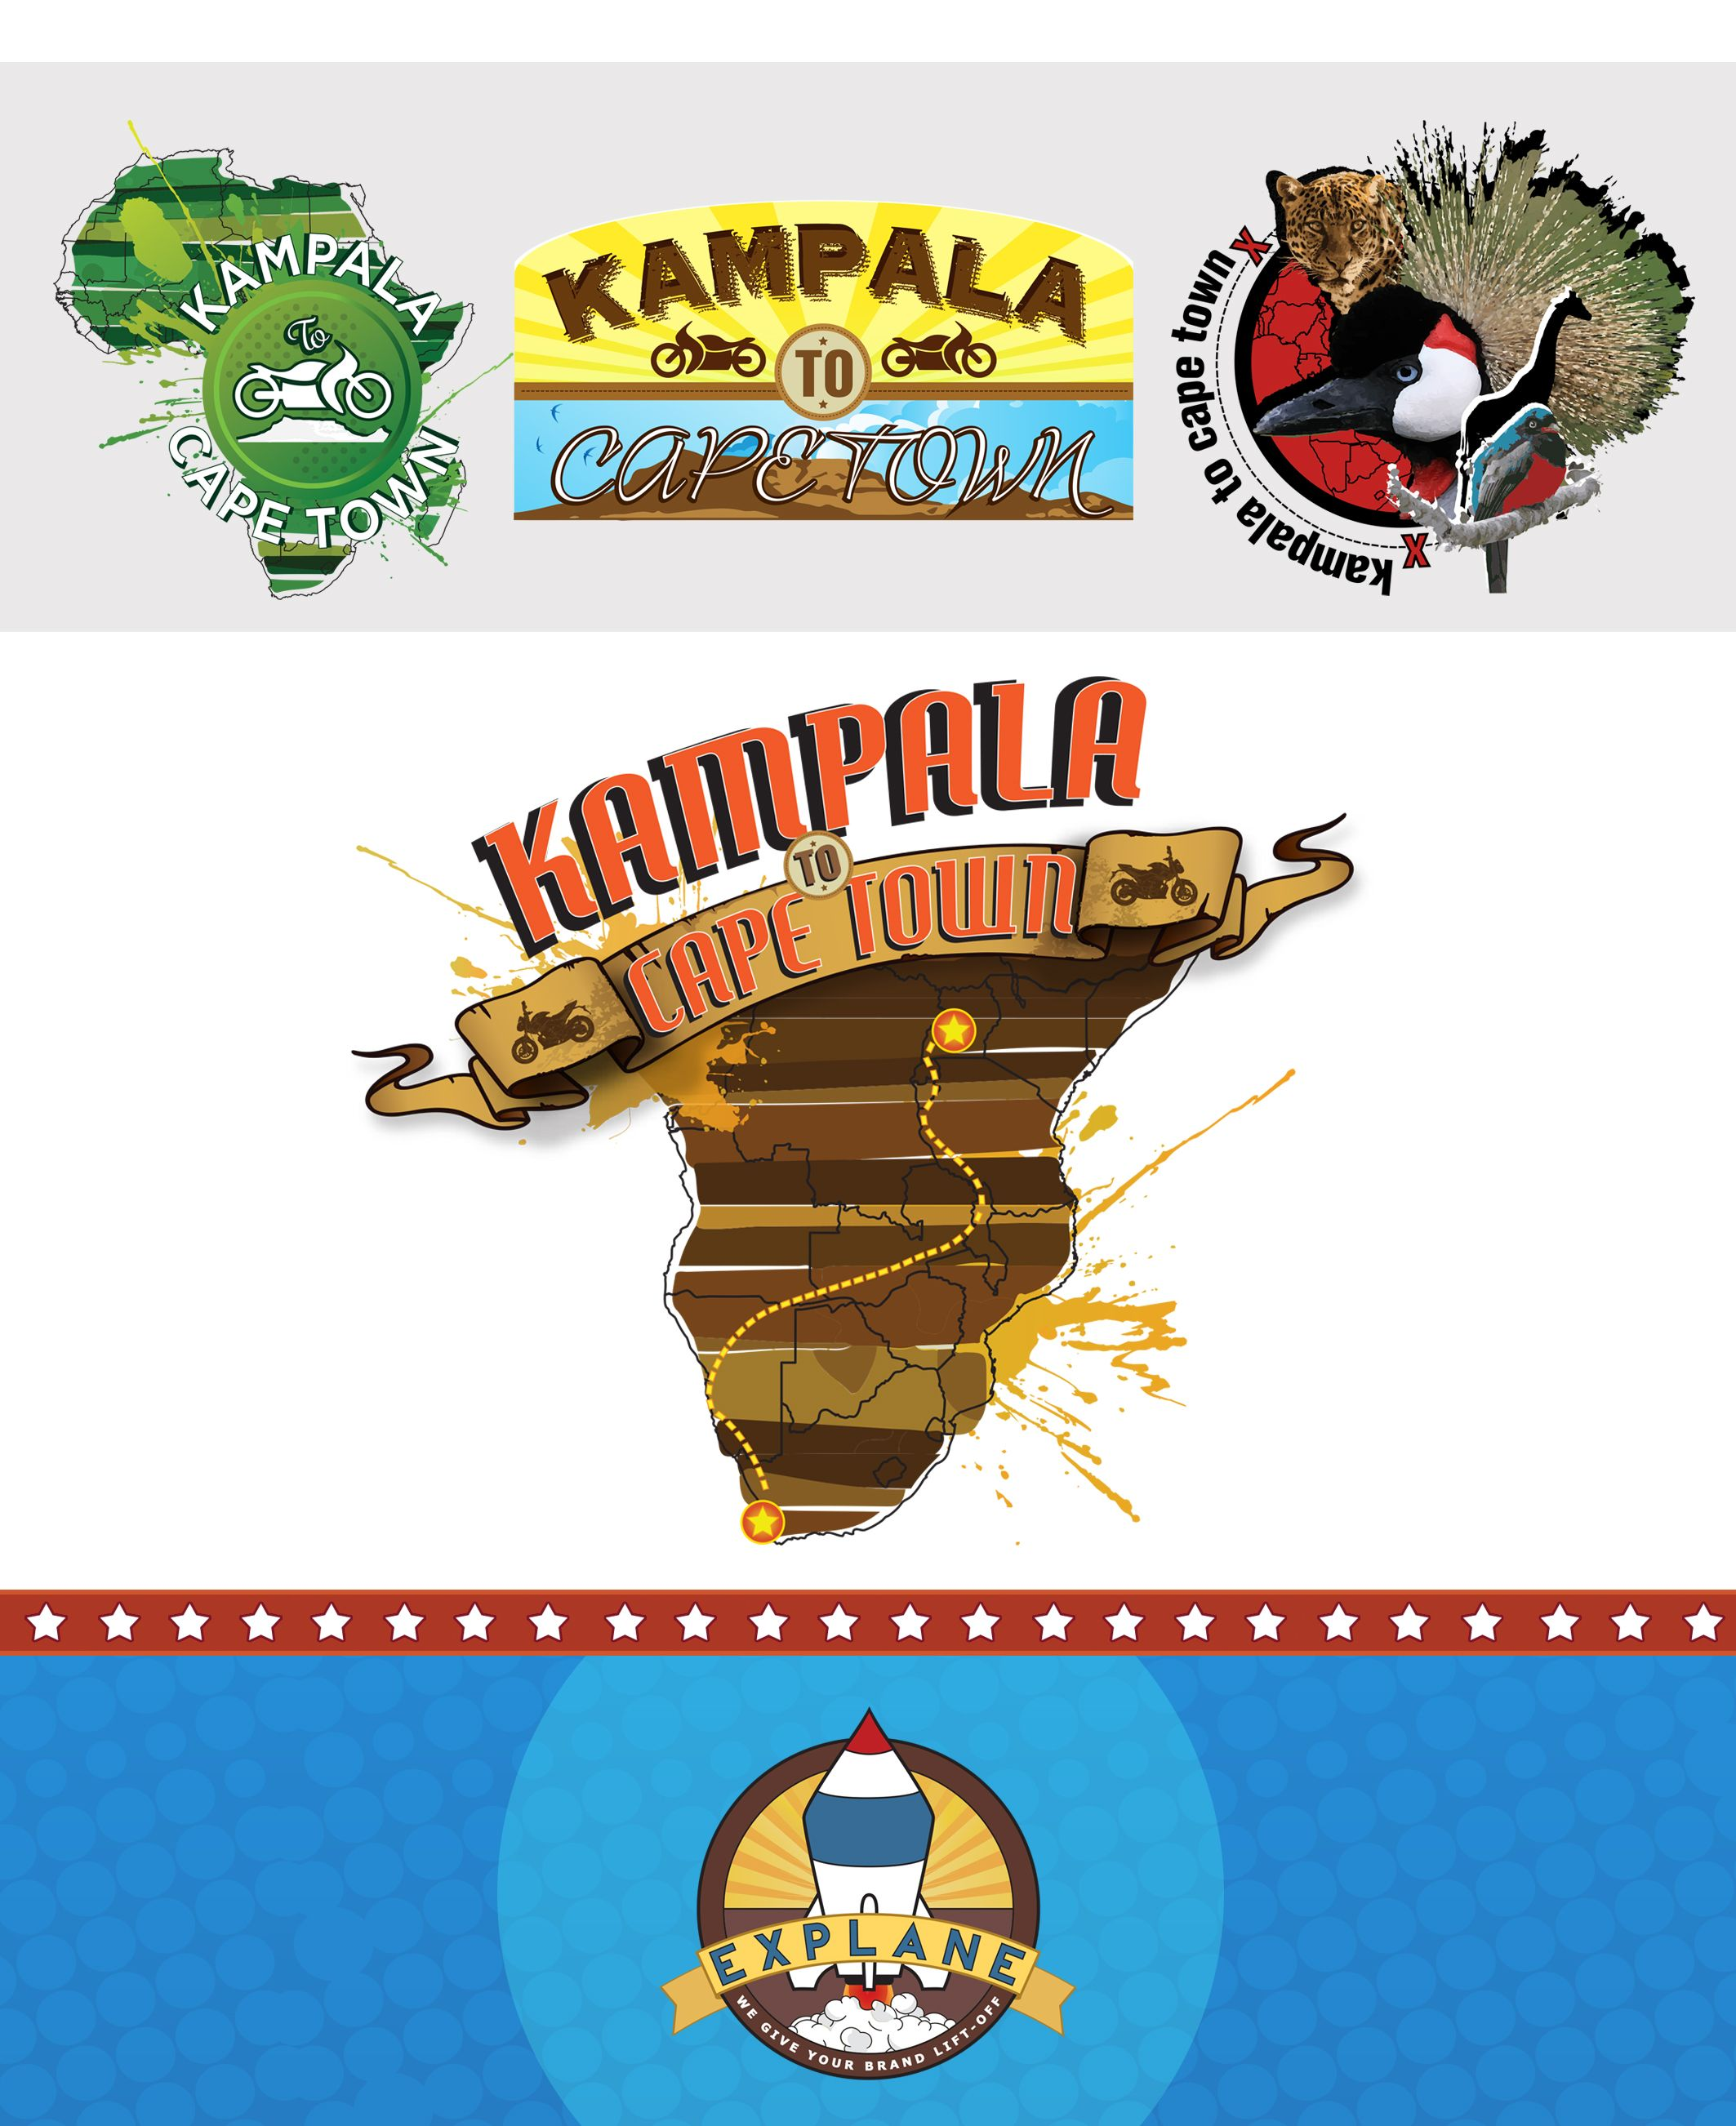 Logo Development for Kampala to Cape Town - Some good-hearted people decided to make a motorcycle trip from Kampala down to Cape Town in aid of Riders for Health